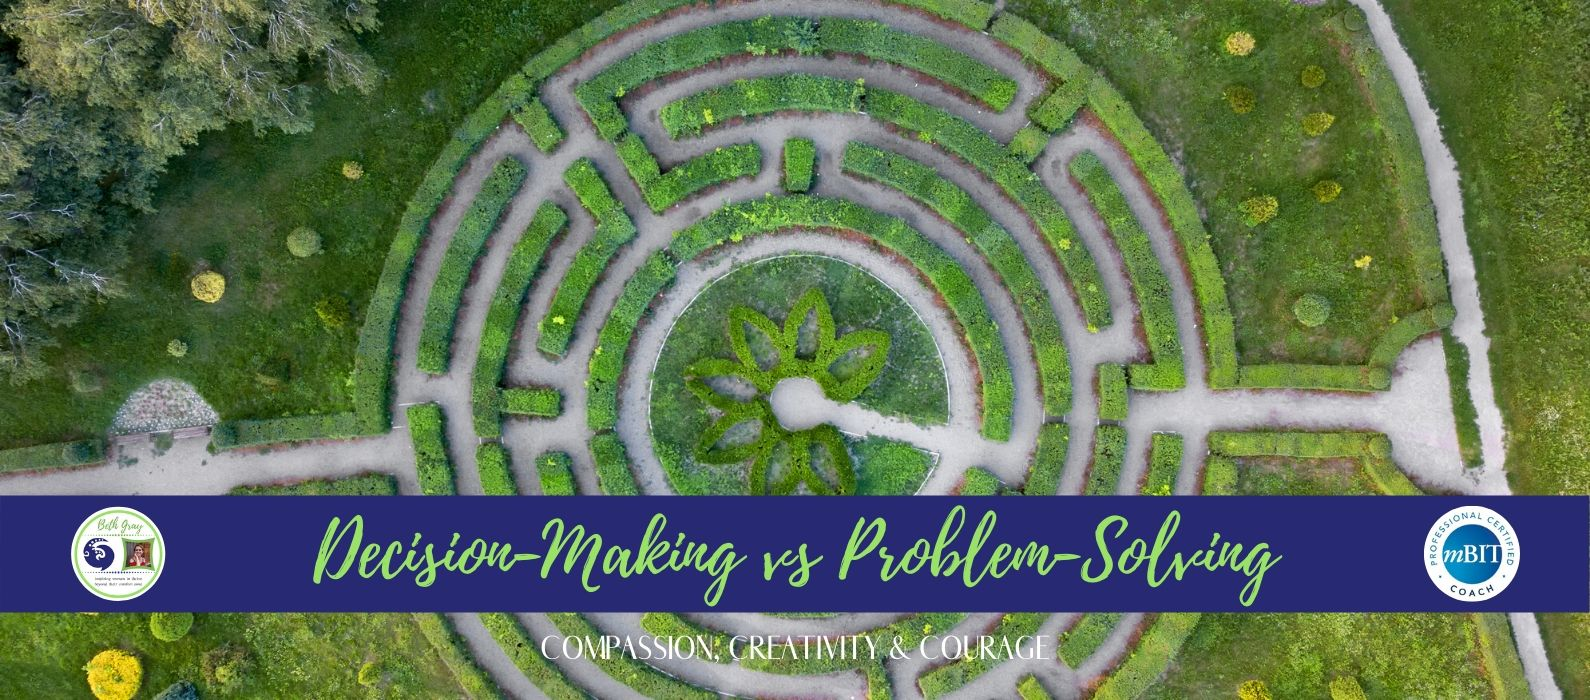 decision-making versus problem-solving, how to separate your decision-making from problem-solving, making a wise decision, choosing what you want, preparing your plans, plans and goals, separating the what from the how, how to plan your goals, how to get what you want,, identifying the problem to solve, is this a problem to solve or a decision to make, an alternative vision, if I could solve the how, best possible solution, creativity, logic, analysis, courageous action, moving forward, compassionate choice, values, what is important, the right choice, analysis, logic, think outside the box